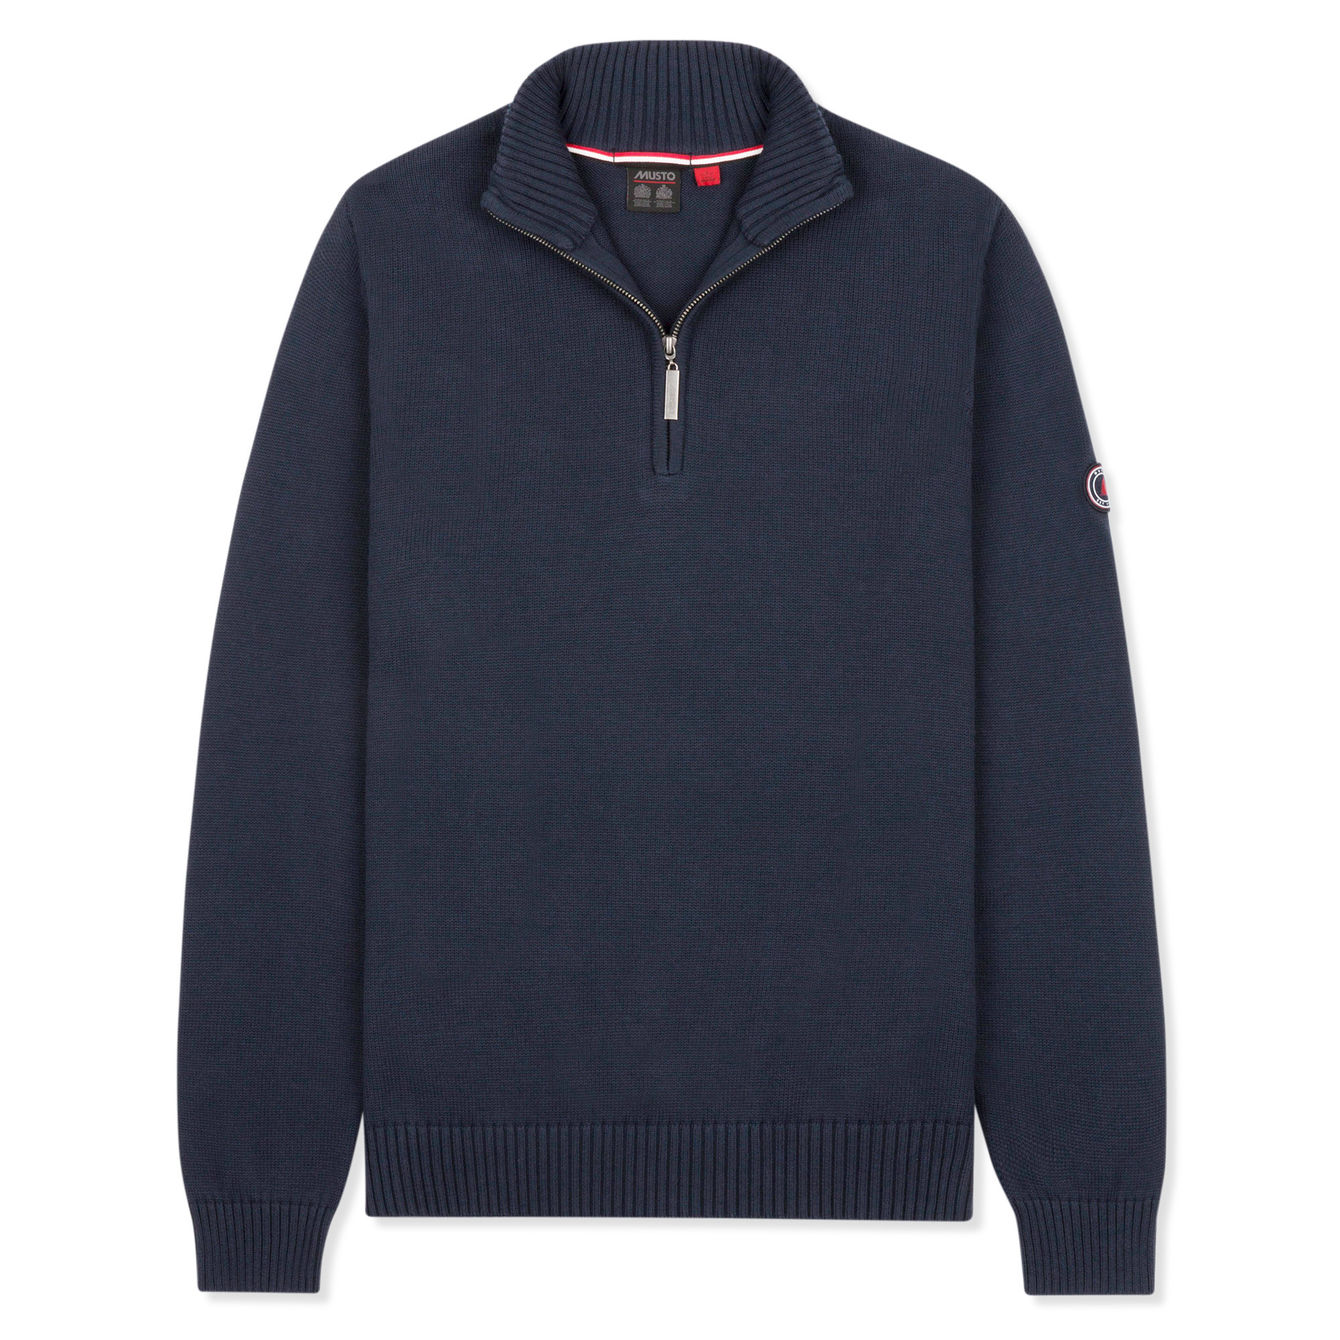 AMBROSE 1/2 ZIP NECK KNIT